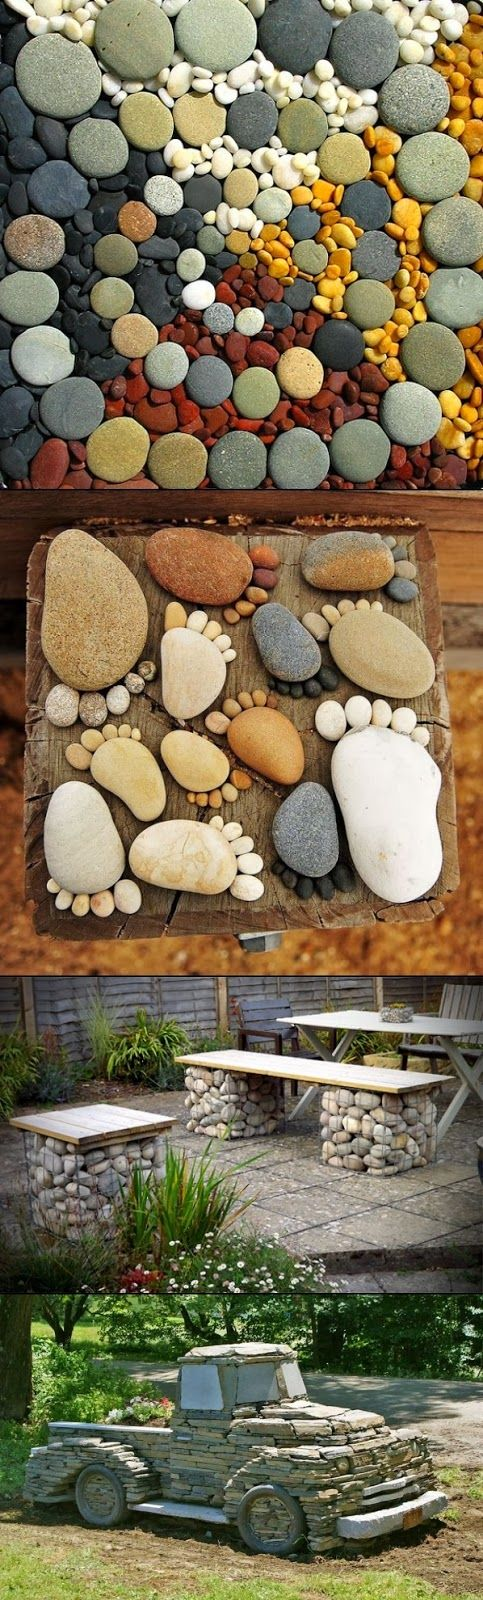 Easy Garden DIY Projects with Stones- Love the truck!